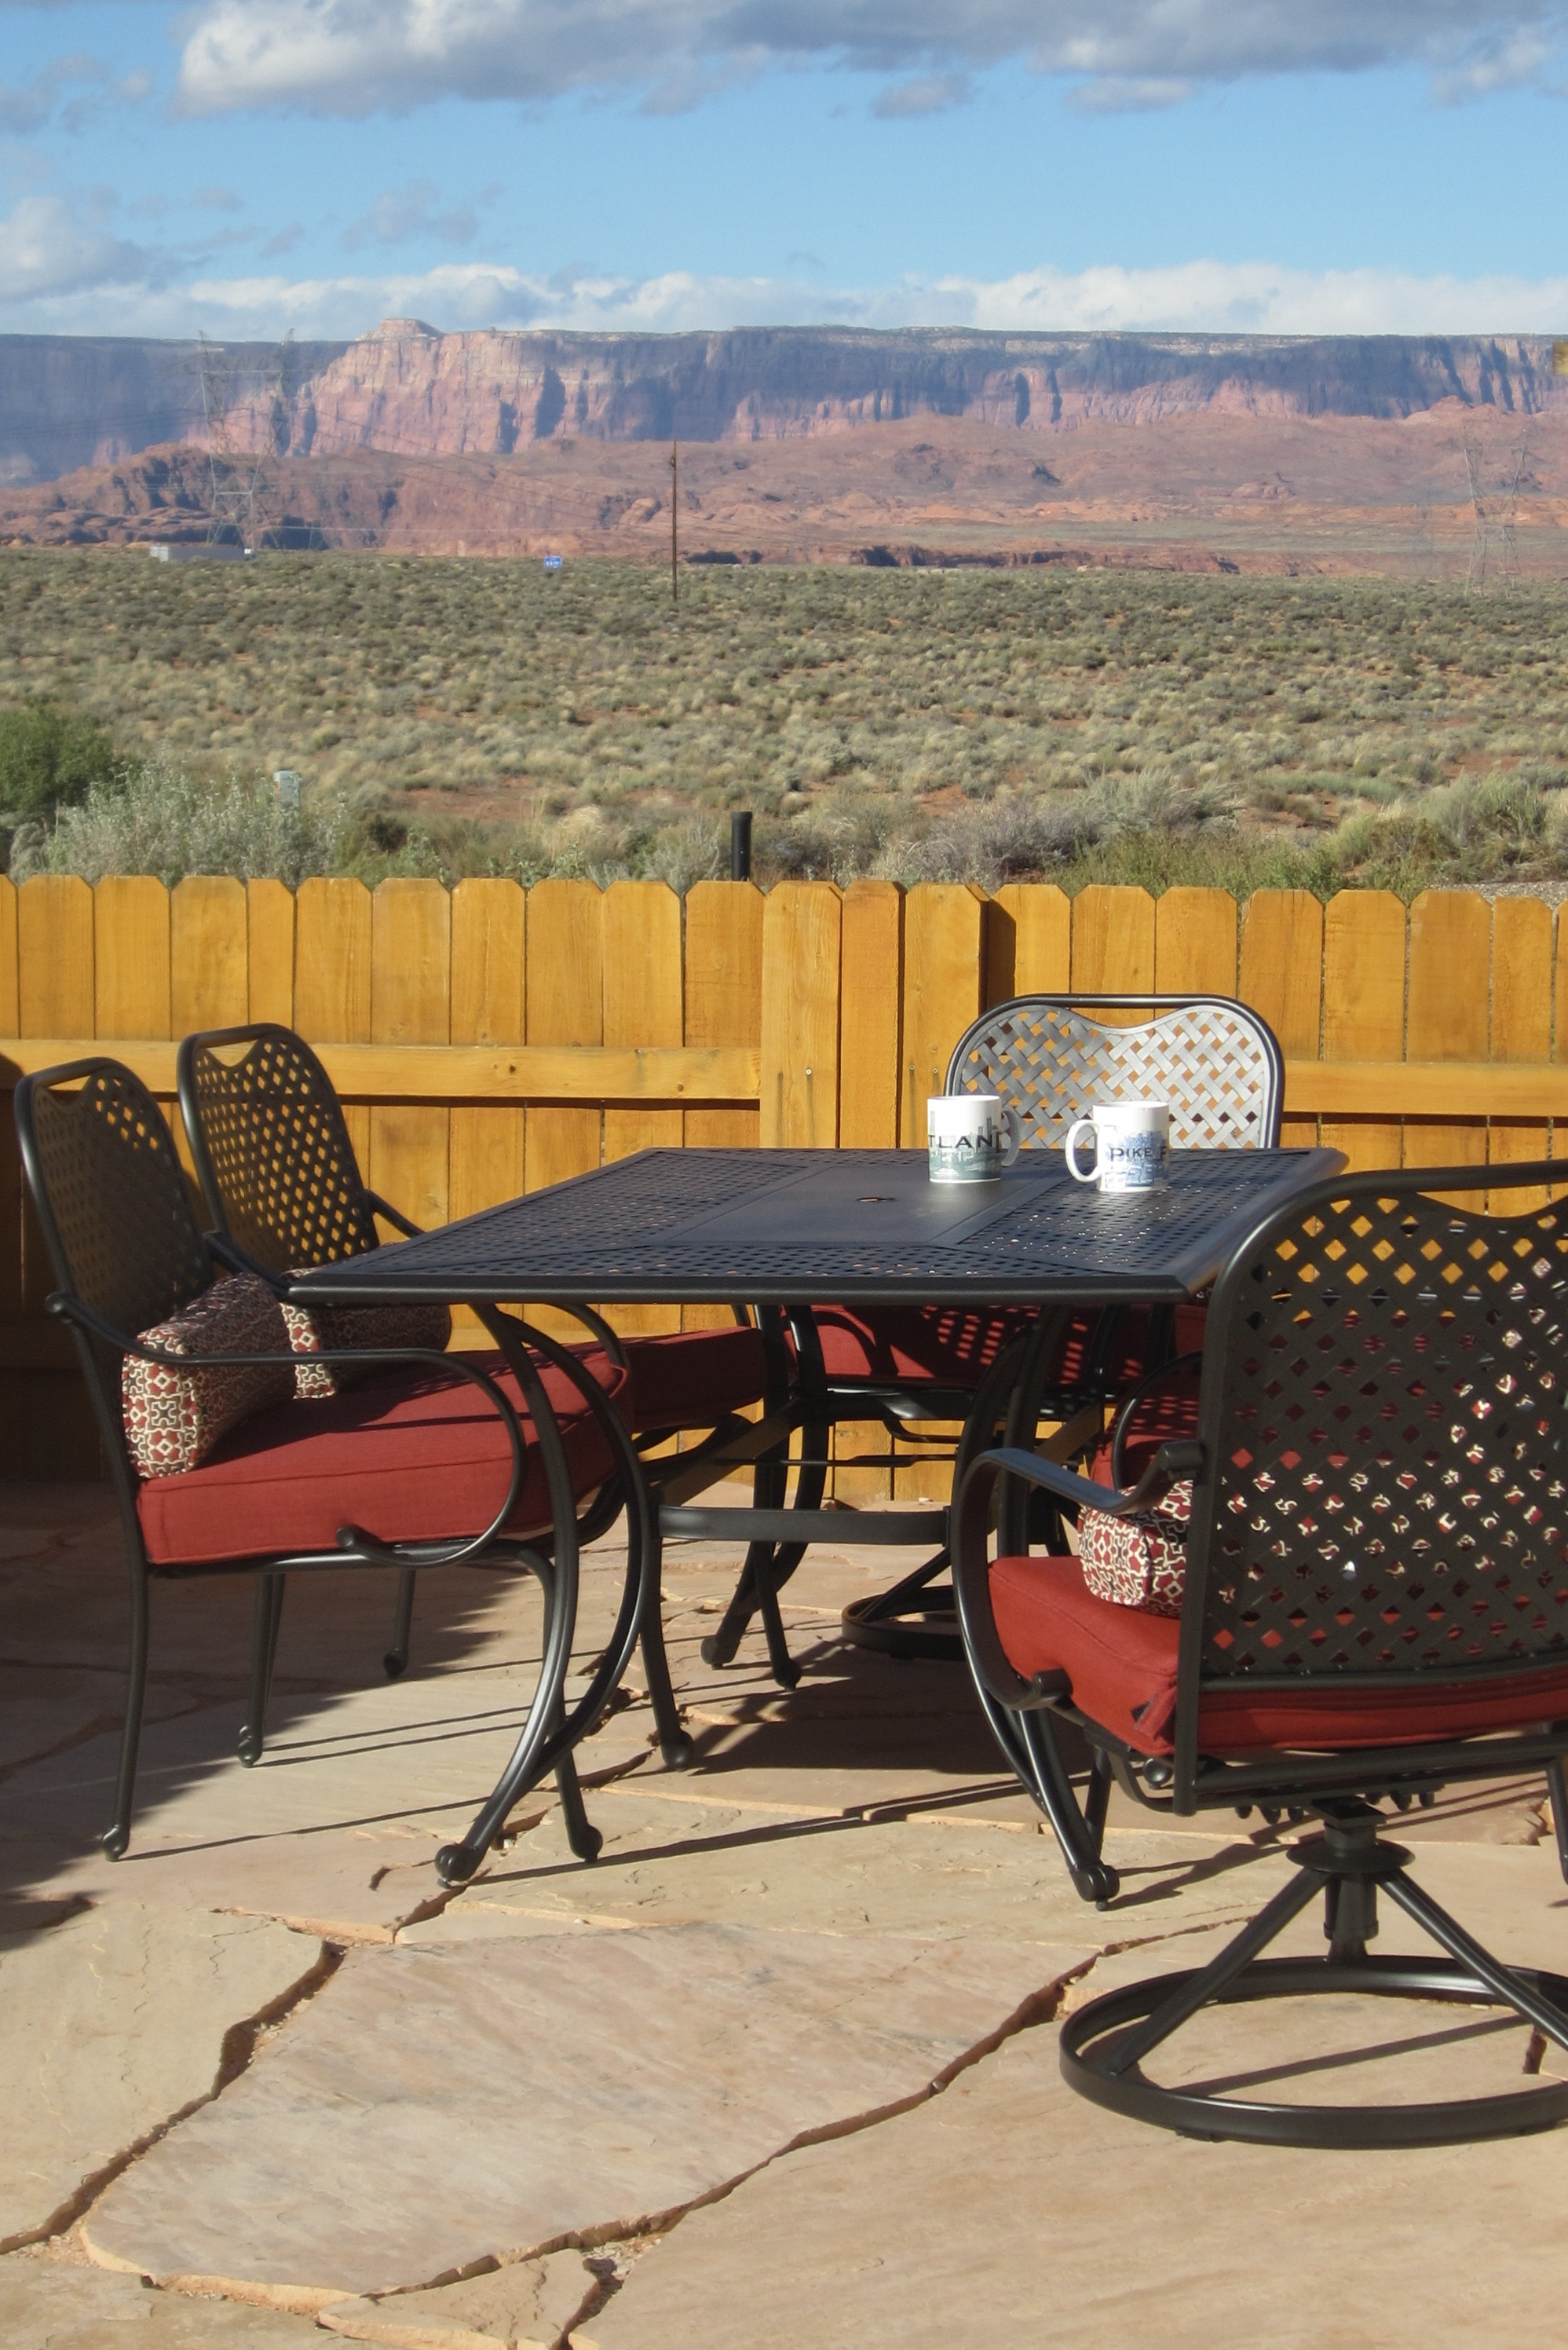 Vermillion Cliffs viewed from teh courtyard patio table in Page, AZ